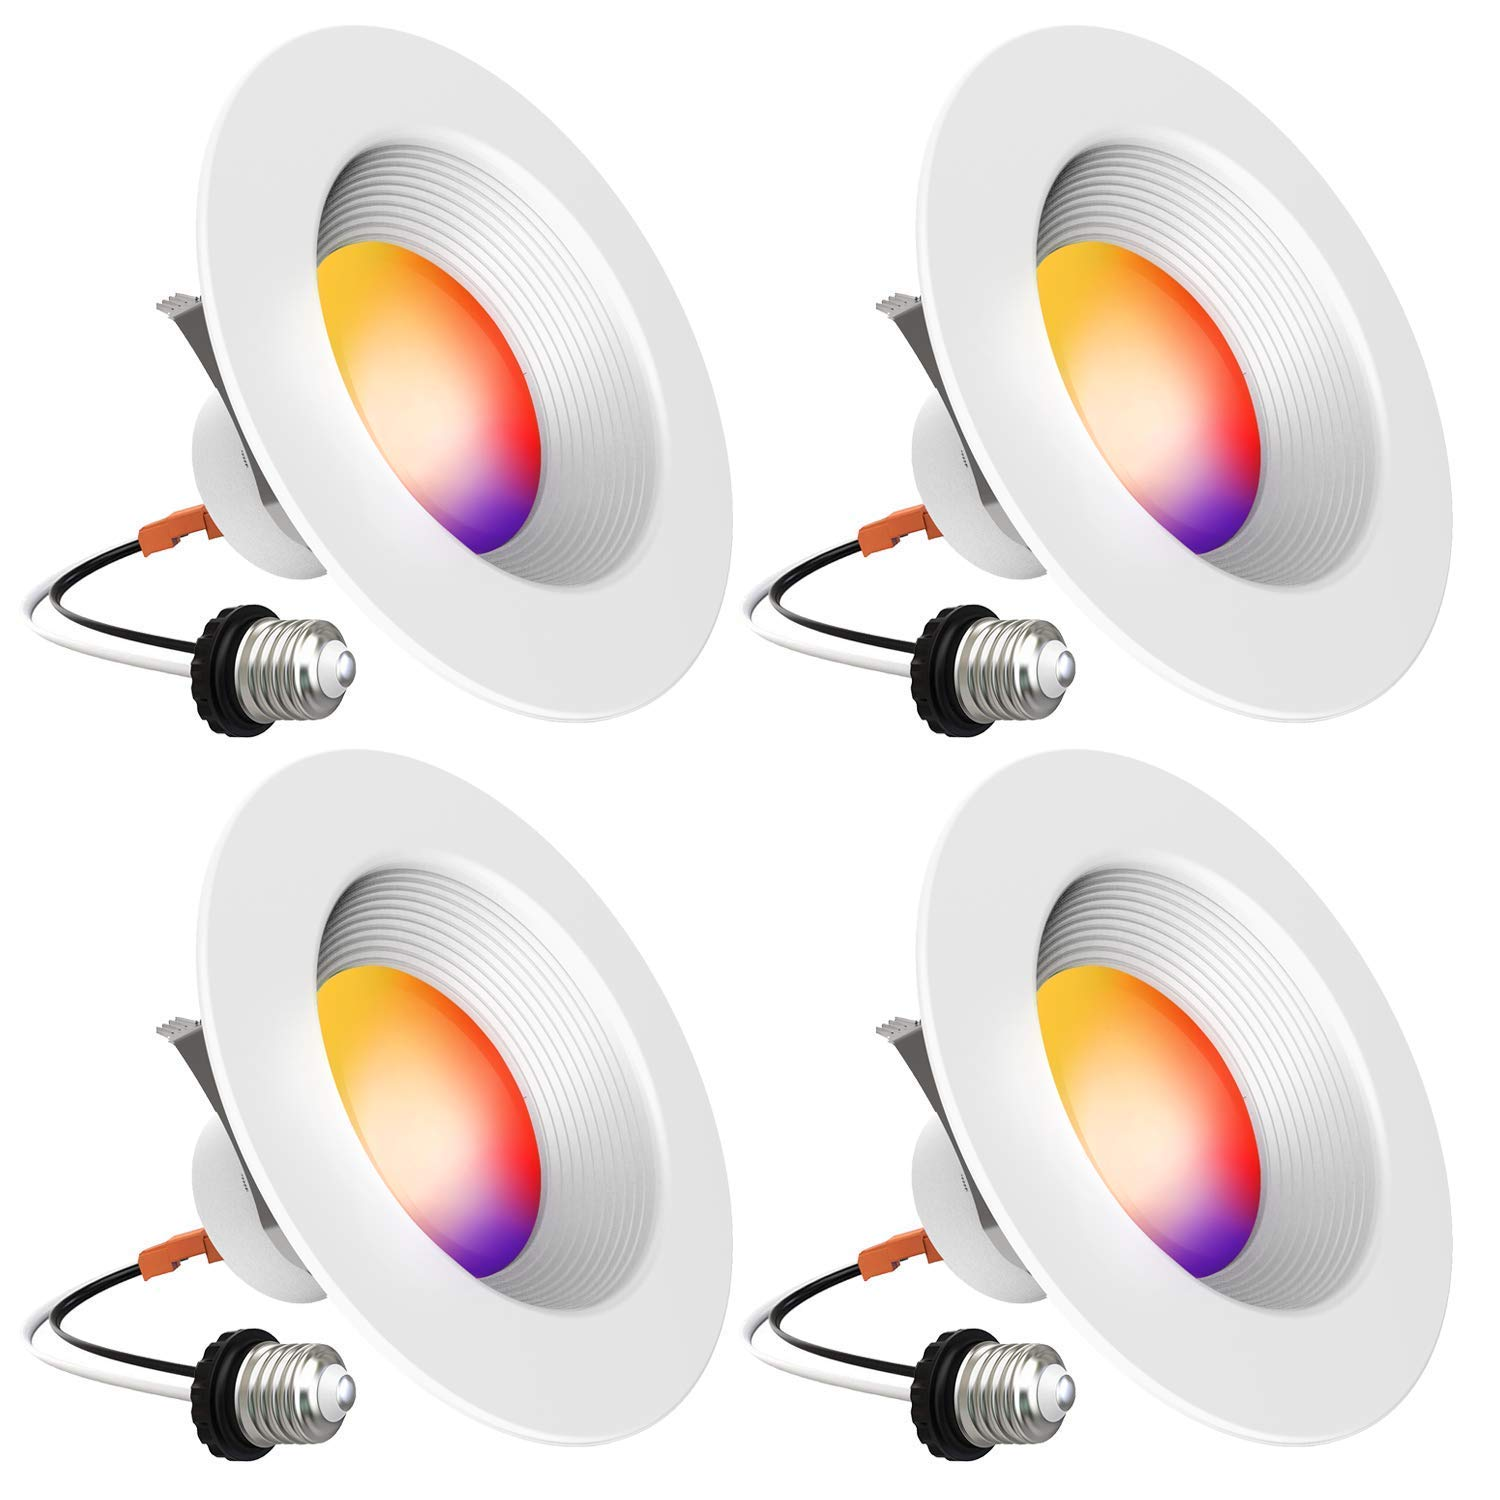 Smart Recessed Lighting - iLintek 5/6 inch Bluetooth Led Downlight Color Changing Retrofit Fixture Tunable White Dimmable 13W-Equivalent 80w, 1100lm No hub Required(5/6 inch - 4)